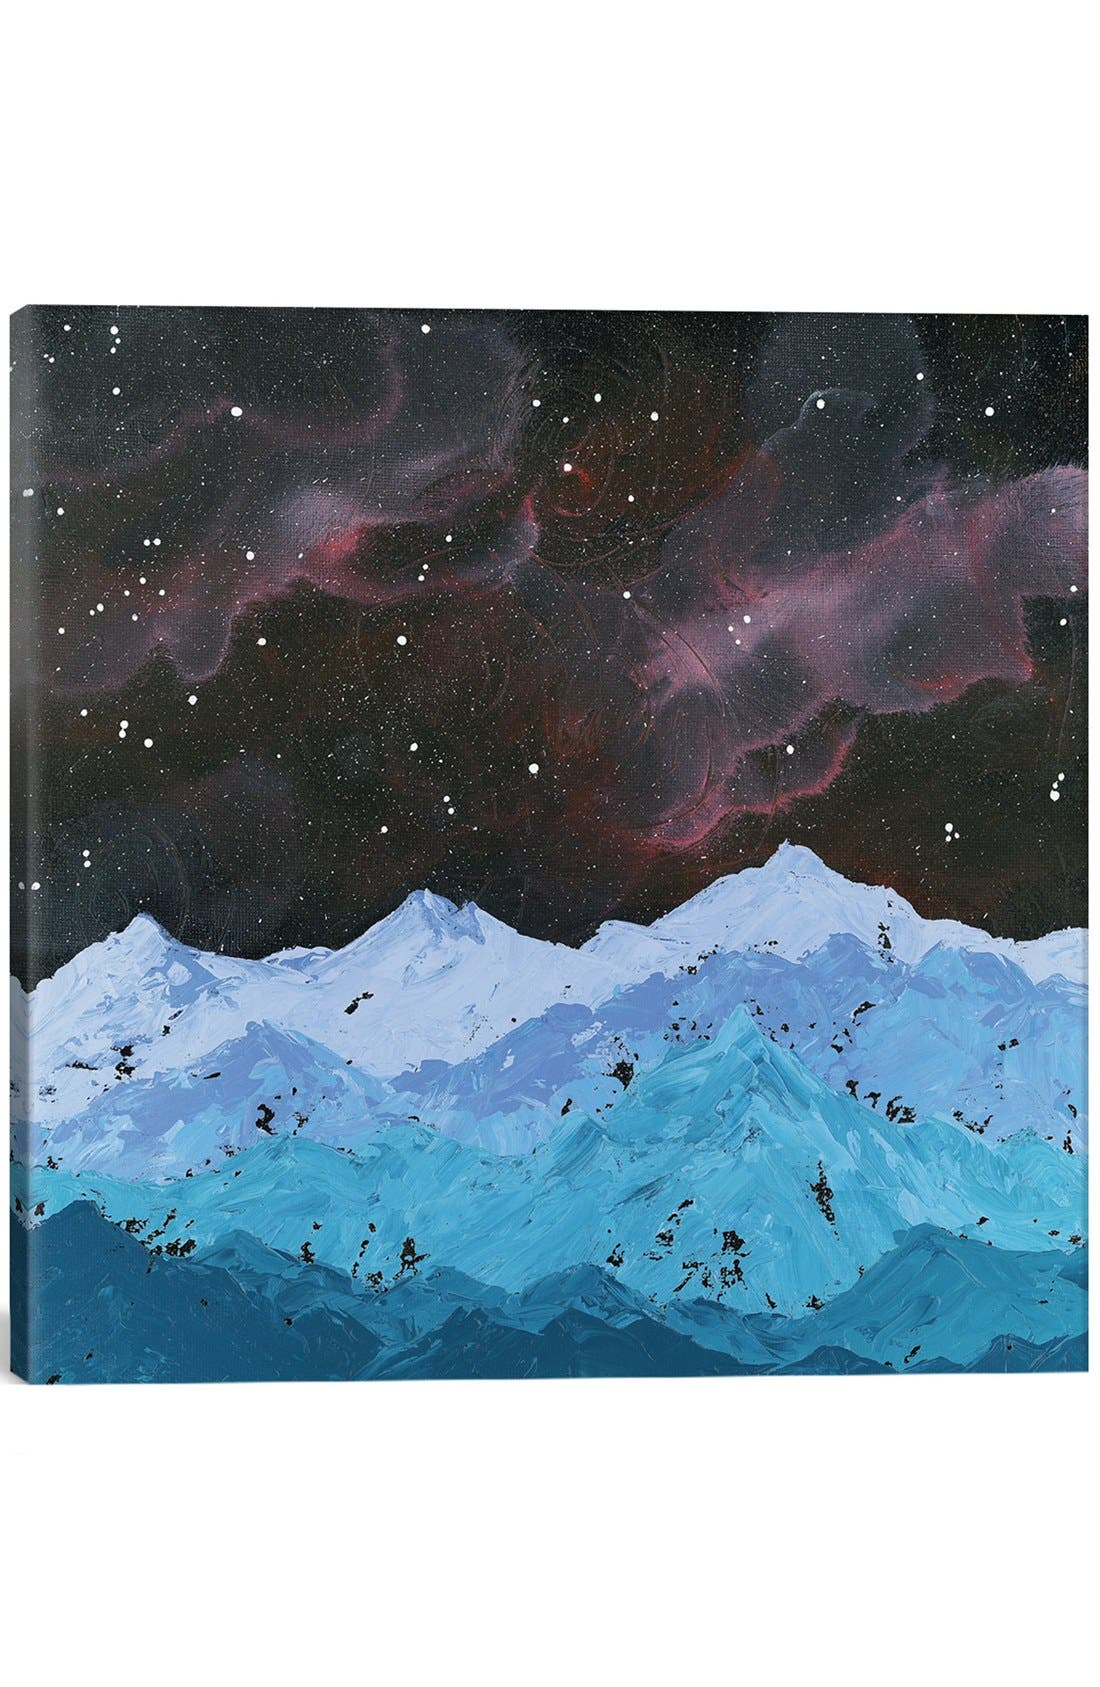 Alternate Image 1 Selected - iCanvas 'Space Mountains' Giclée Print Canvas Art